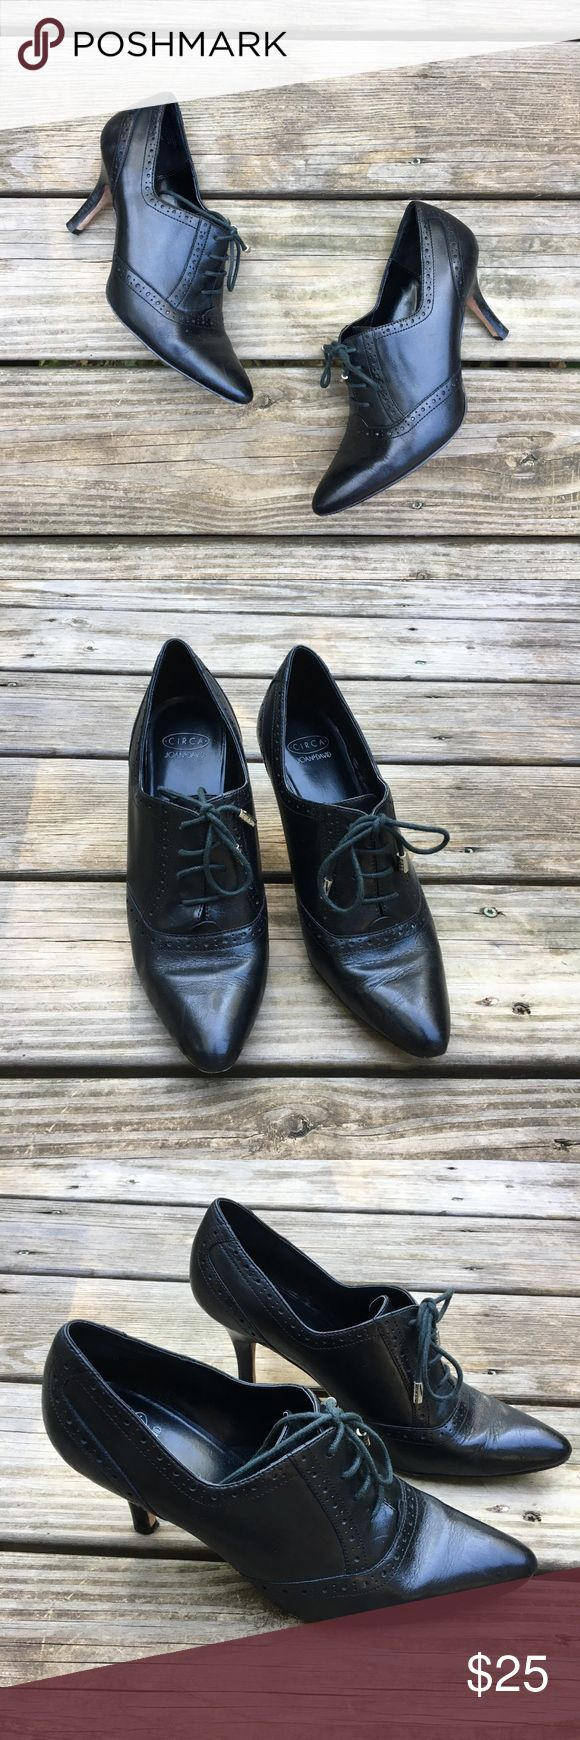 """Circa Vintage-Style Black Lace-up Heels These heels are perfect for you vintage fashion lovers! They are in great condition. Circa Joan & David brand in a size 7.5 medium. They have a 3"""" heel. Super-cute!! Reasonable offers welcome Circa Joan & David Shoes Heels"""